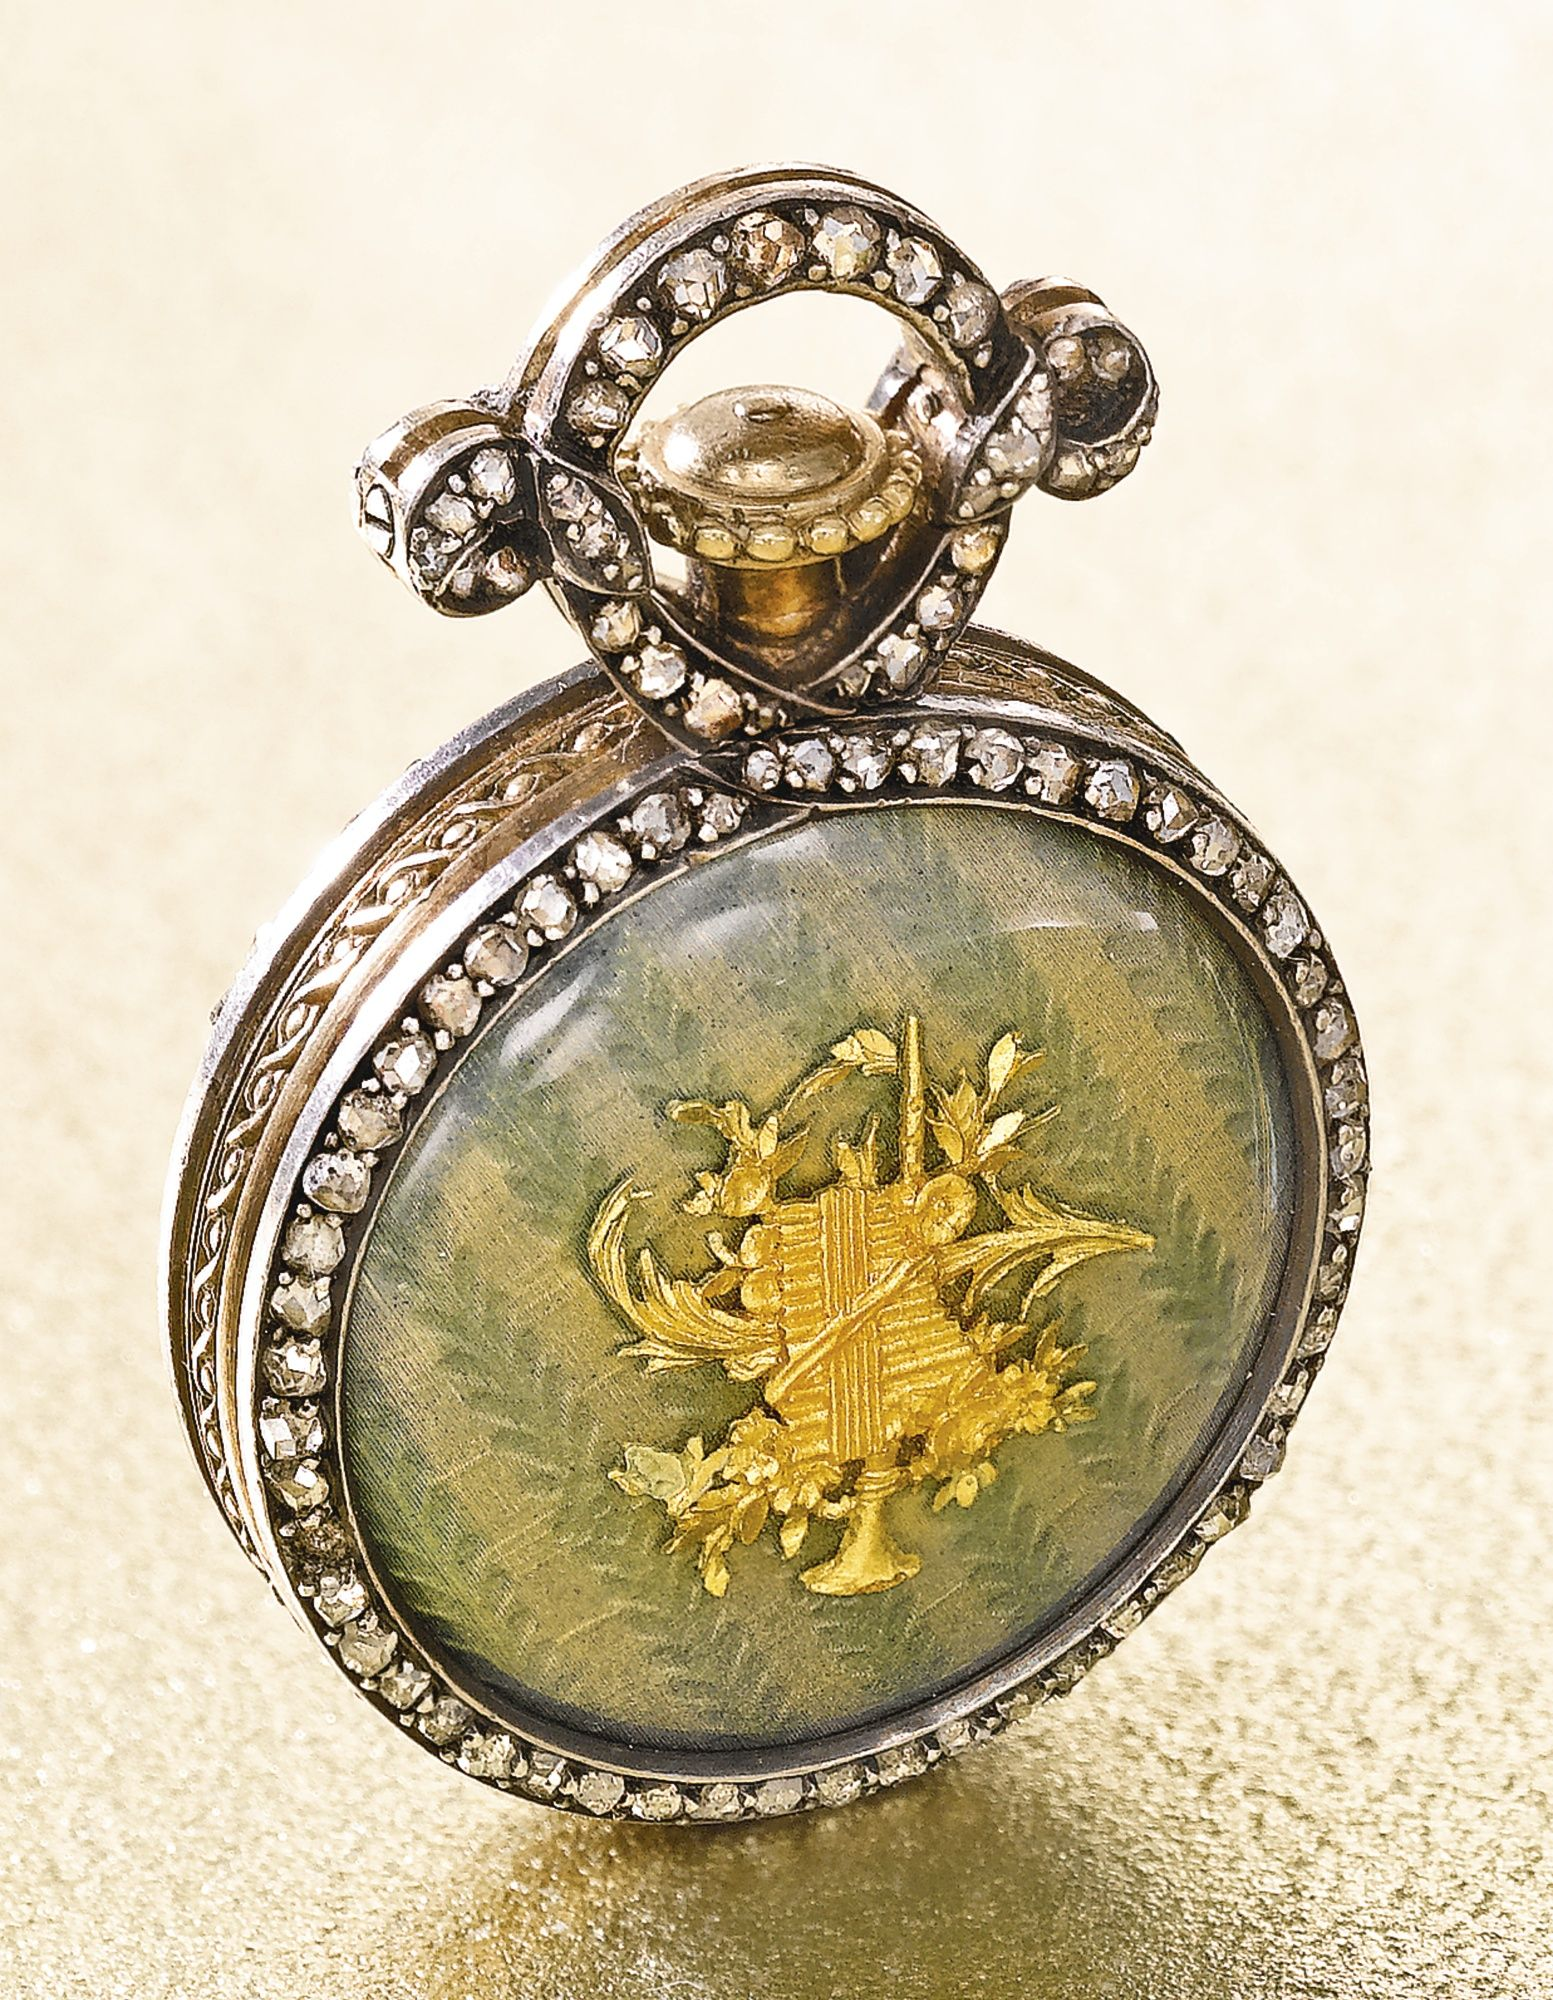 Boucheron a yellow gold enamel and diamond set watch circa 1890 boucheron a yellow gold enamel and diamond set watch circa 1890 mozeypictures Gallery